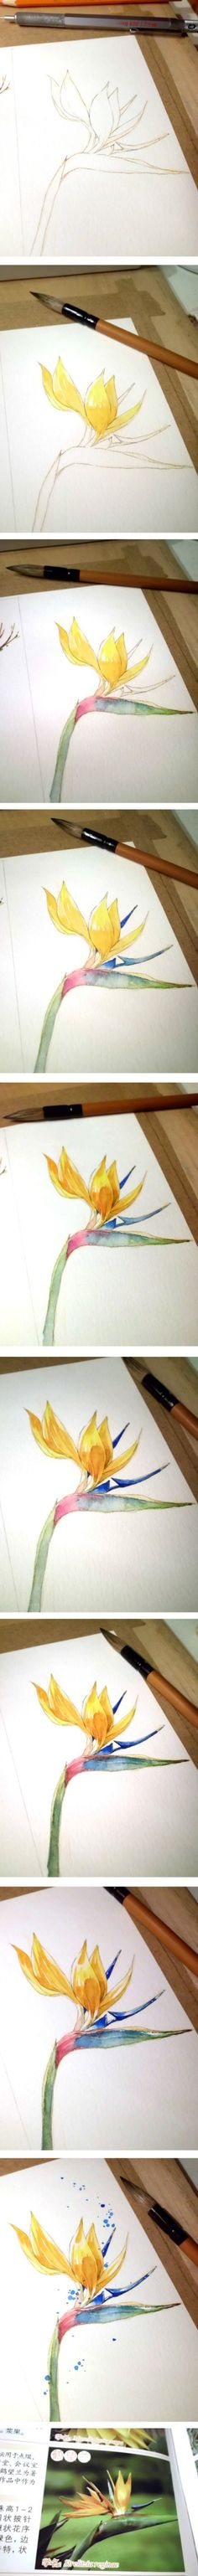 Yellow flower step by step watercolor painting.